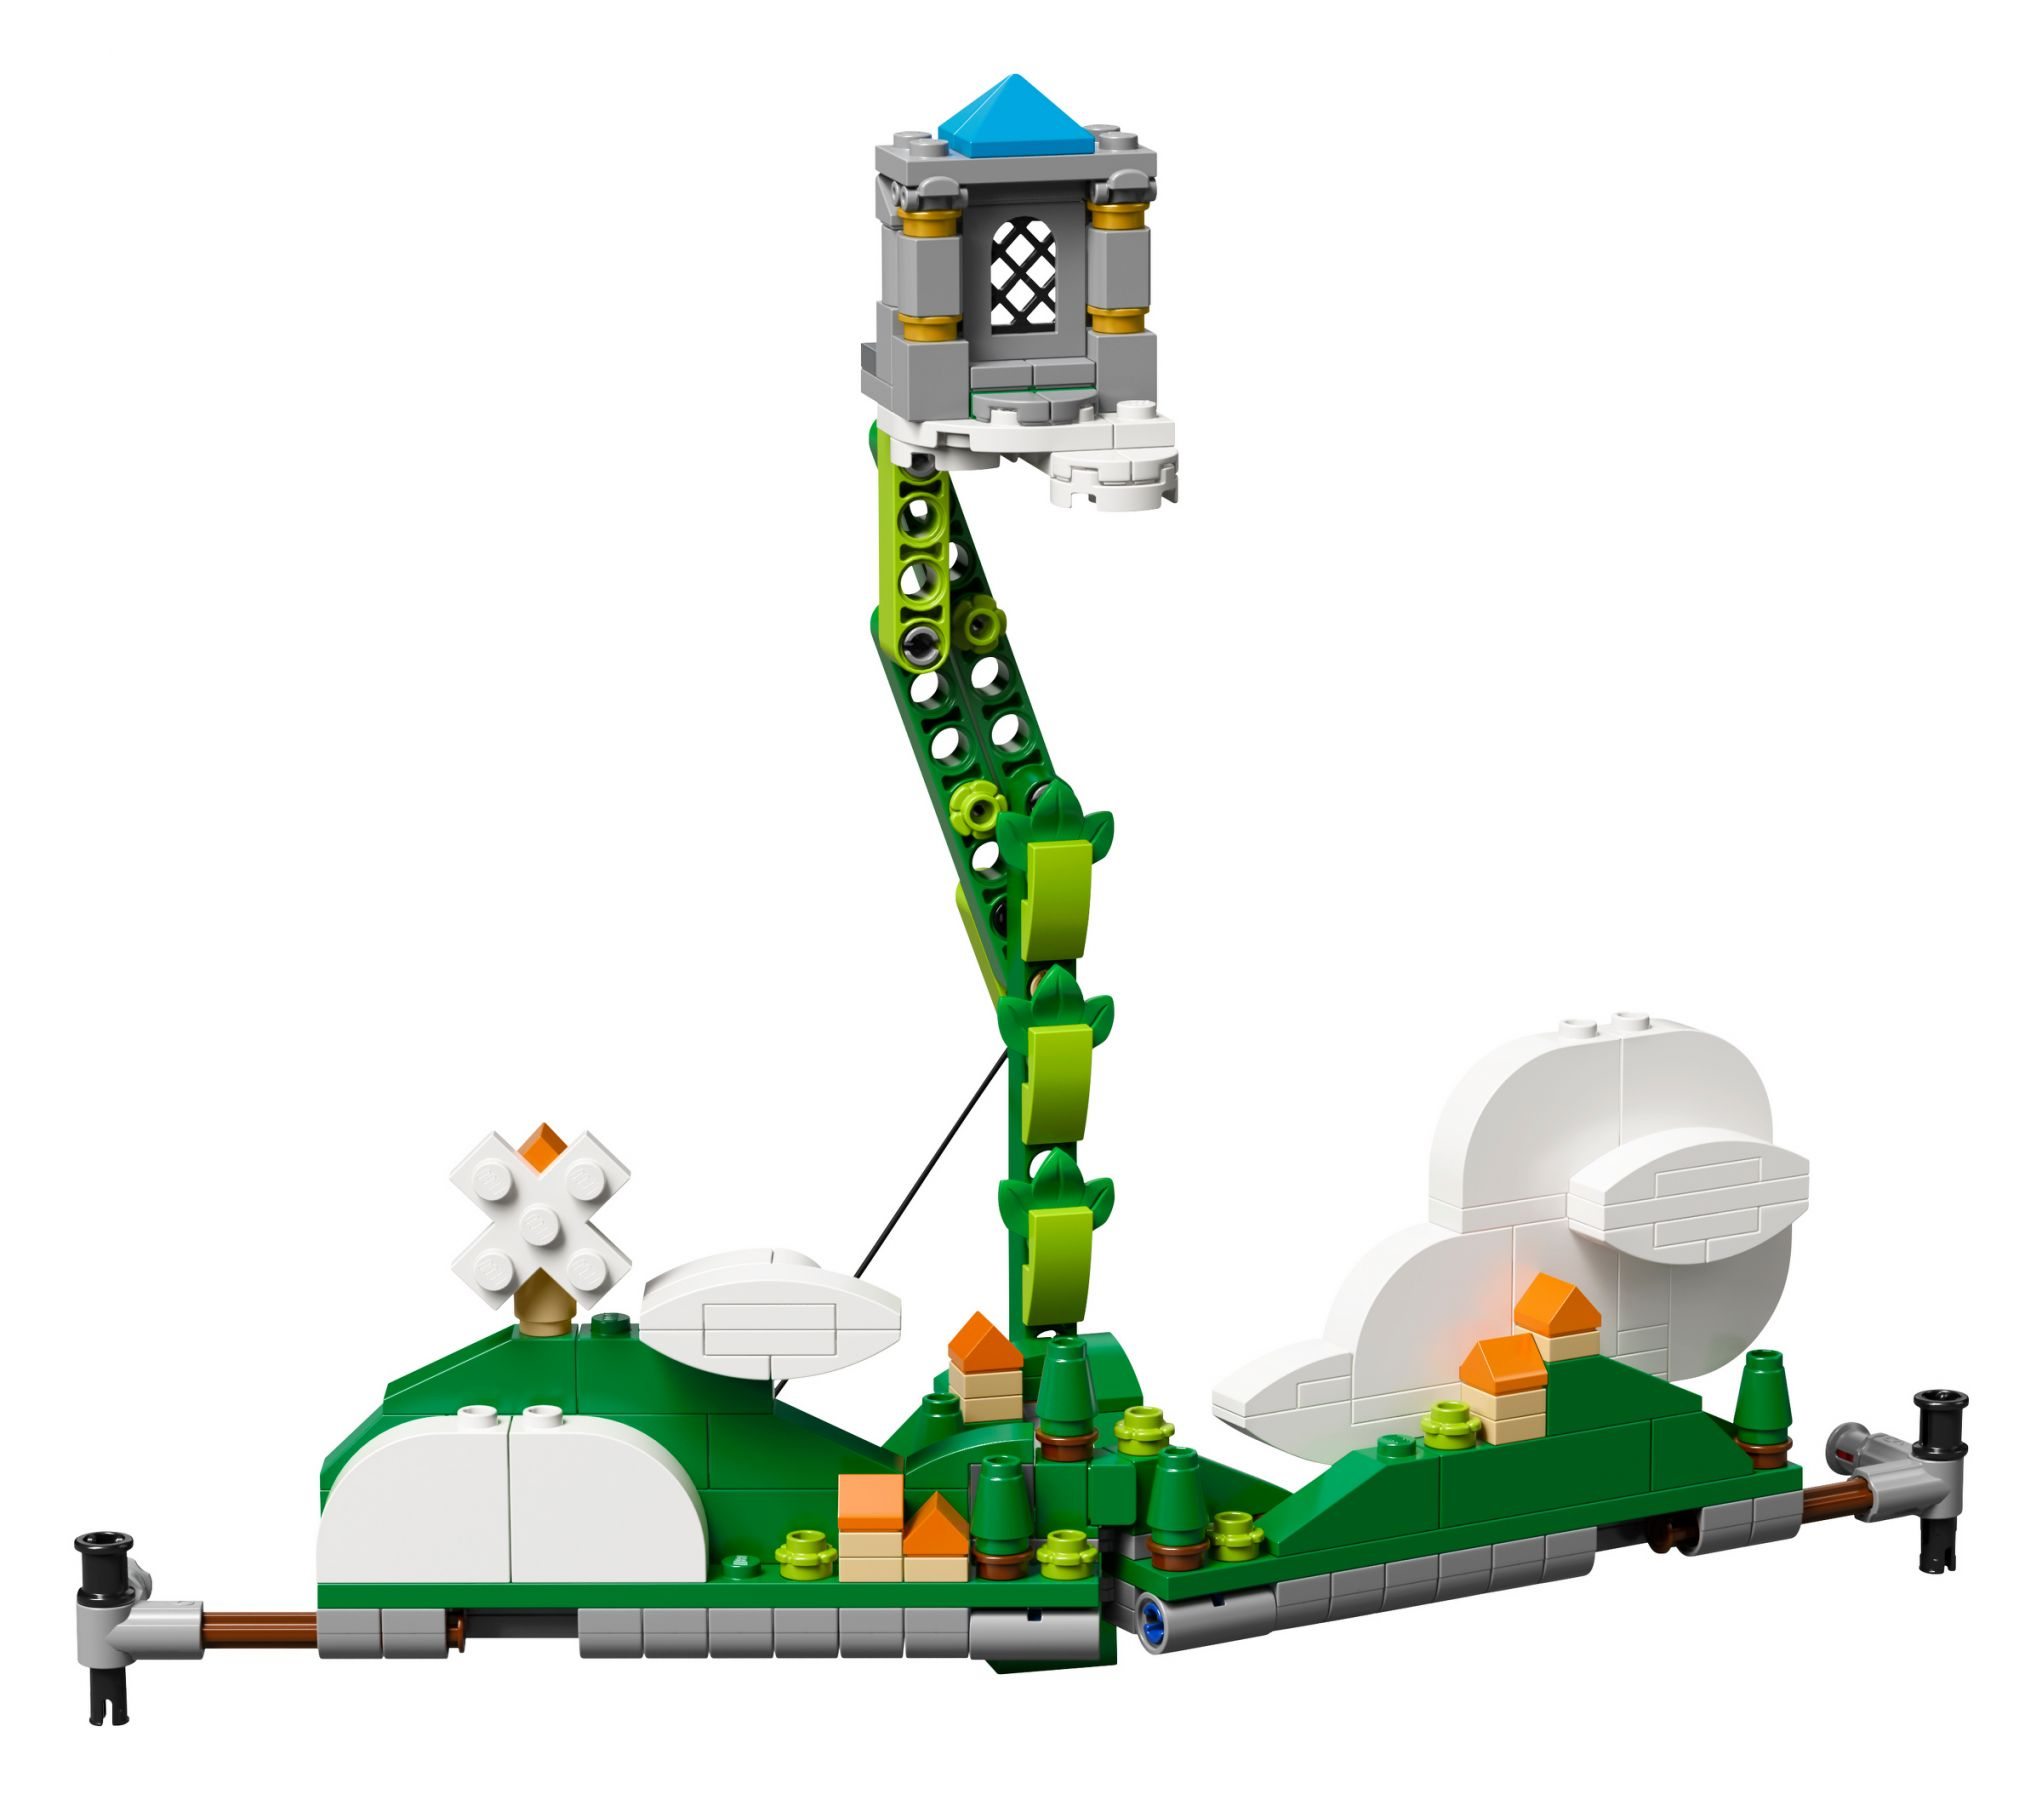 LEGO Ideas 21315 Pop-Up-Buch LEGO_21315_alt7.jpg